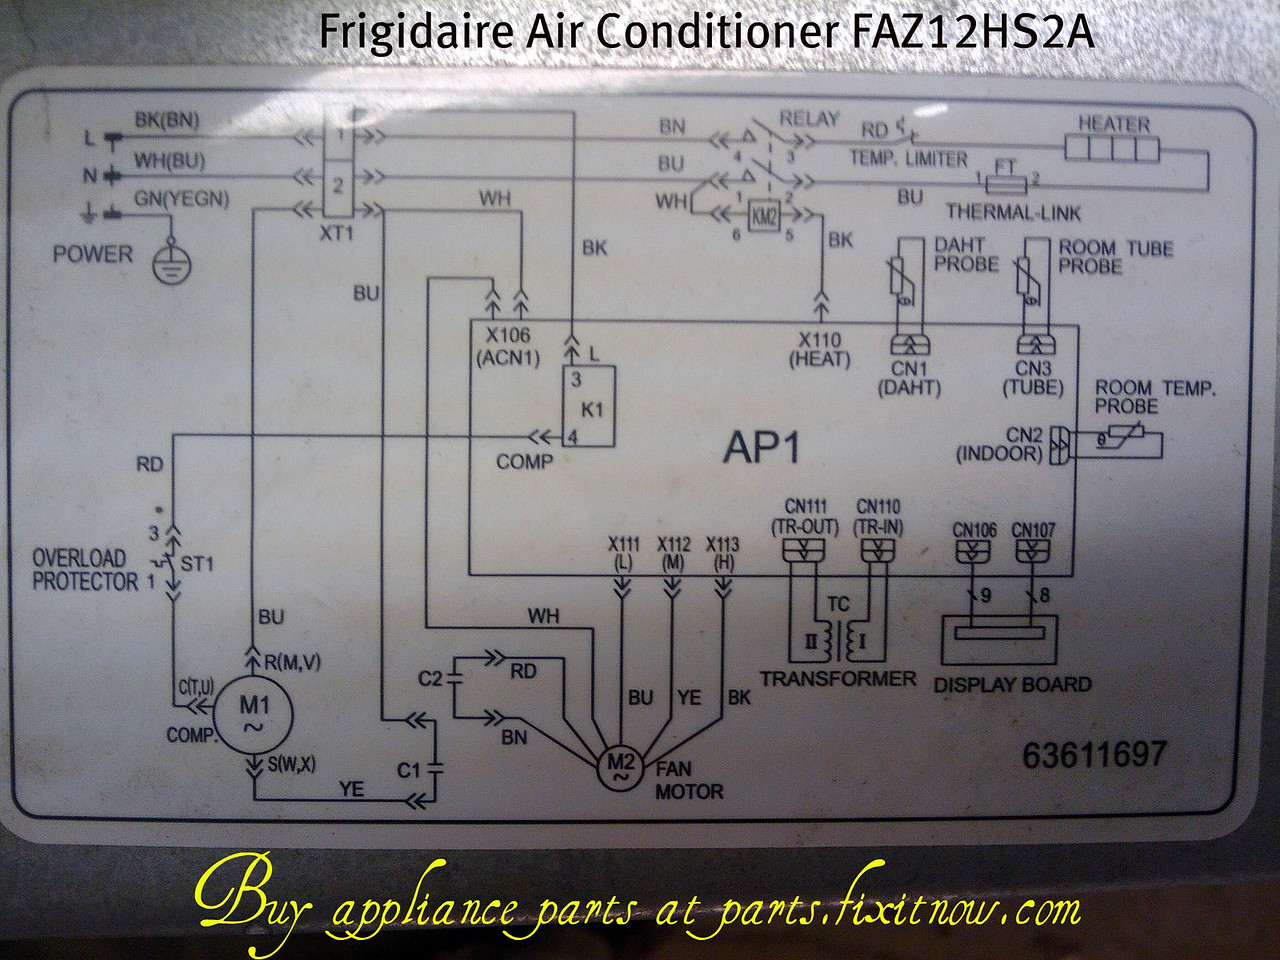 5222984234_5c54e75af1_o X2 wiring diagram for frigidaire air conditioner readingrat net york air conditioner wiring diagram at bayanpartner.co